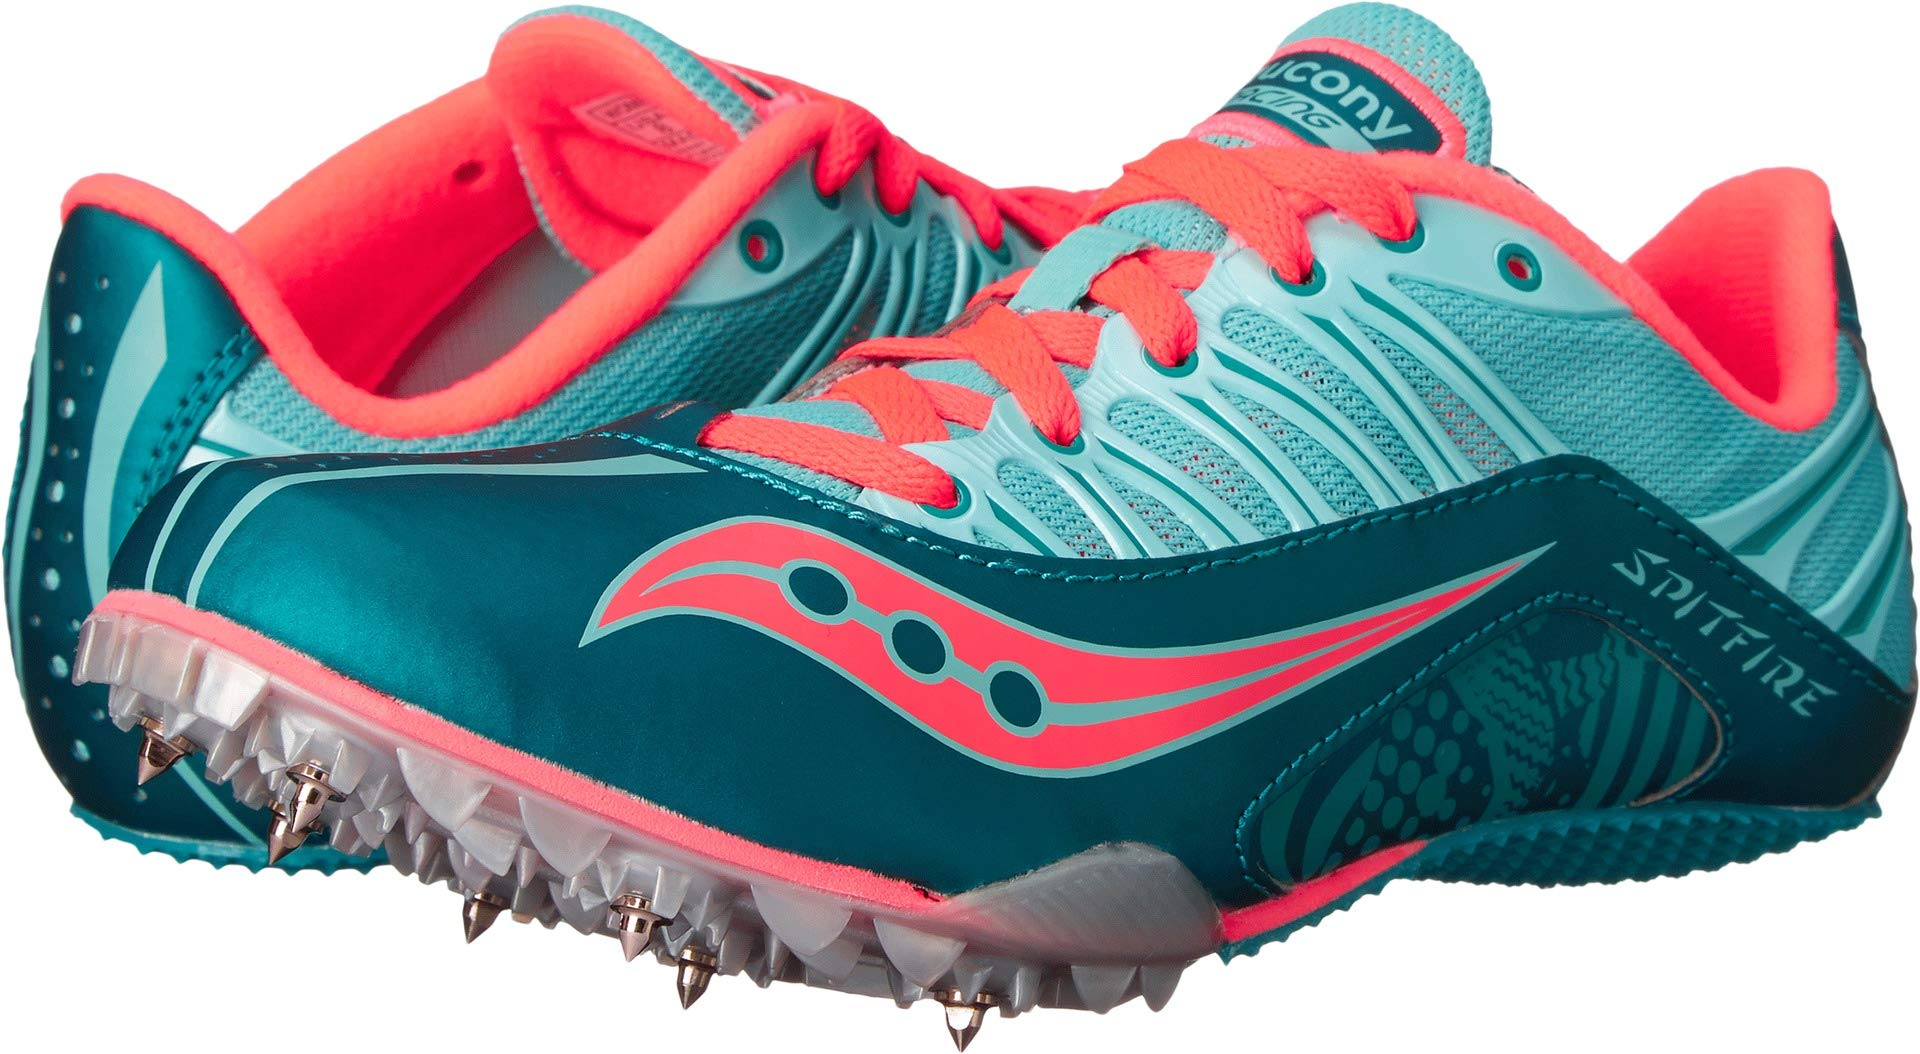 Saucony Women's Spitfire Spike Shoe, Teal/Coral, 9 M US by Saucony (Image #1)